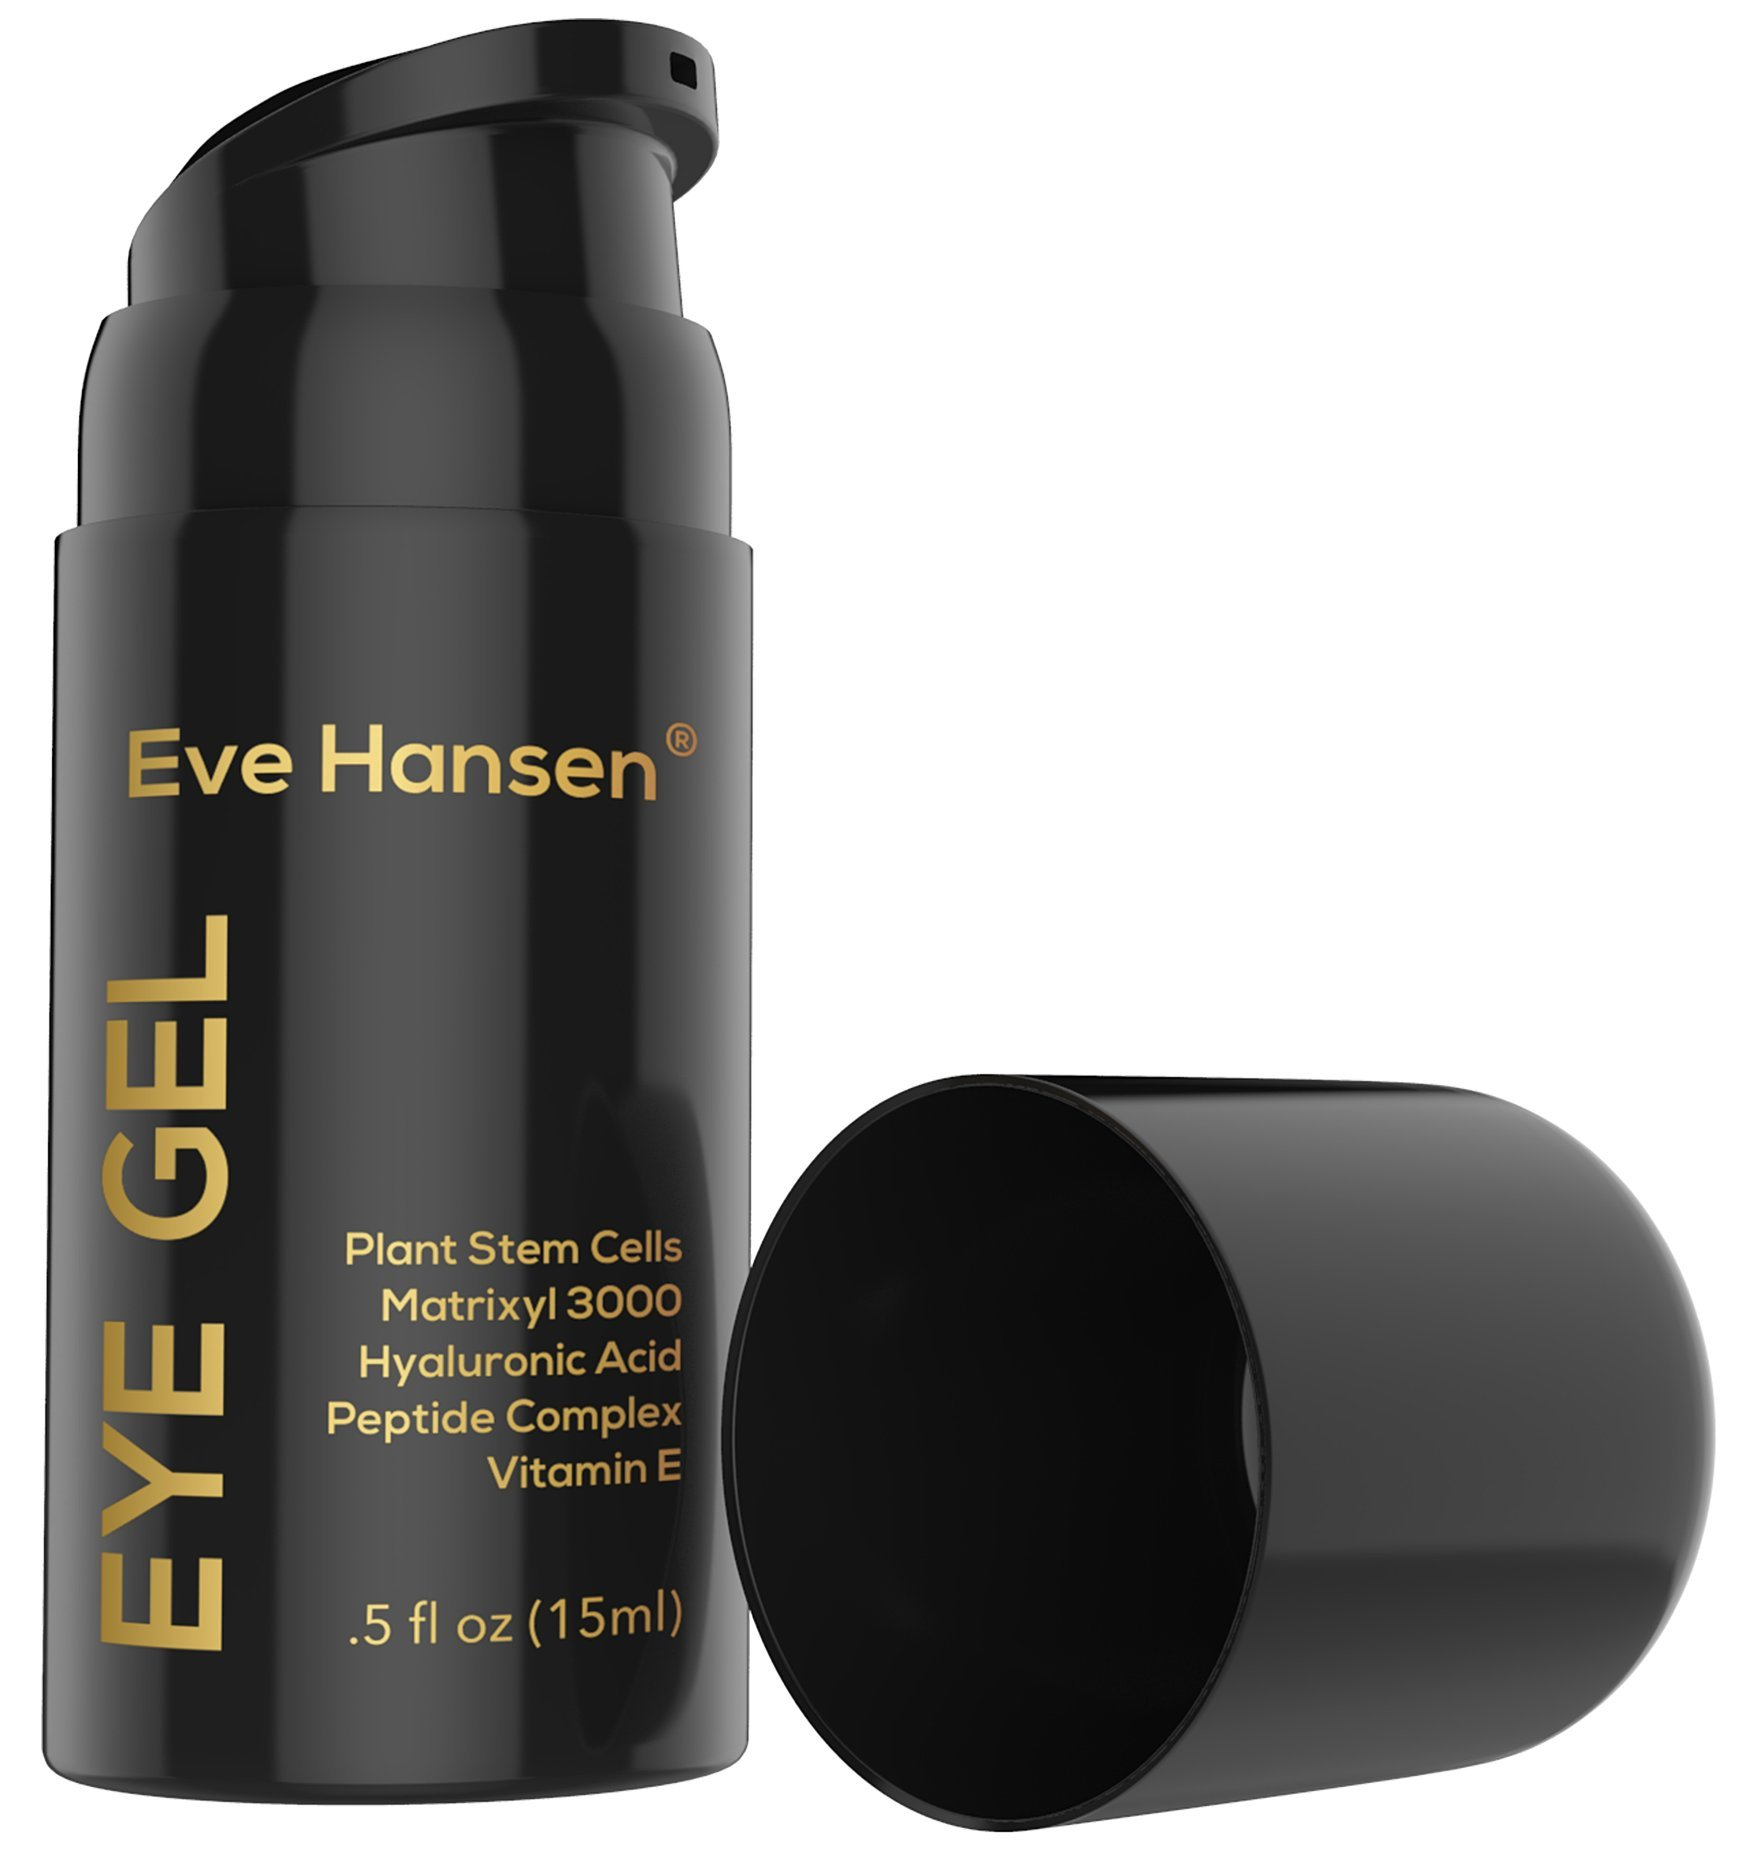 Moisturizing Hyaluronic Eye Gel with Matrixyl 3000, Plant Stem Cells, Peptide Complex - Anti Aging Eye Gel Treatment With Ingredients. Reduce the Appearance of Dark Circles and Puffiness - .5 Ounce